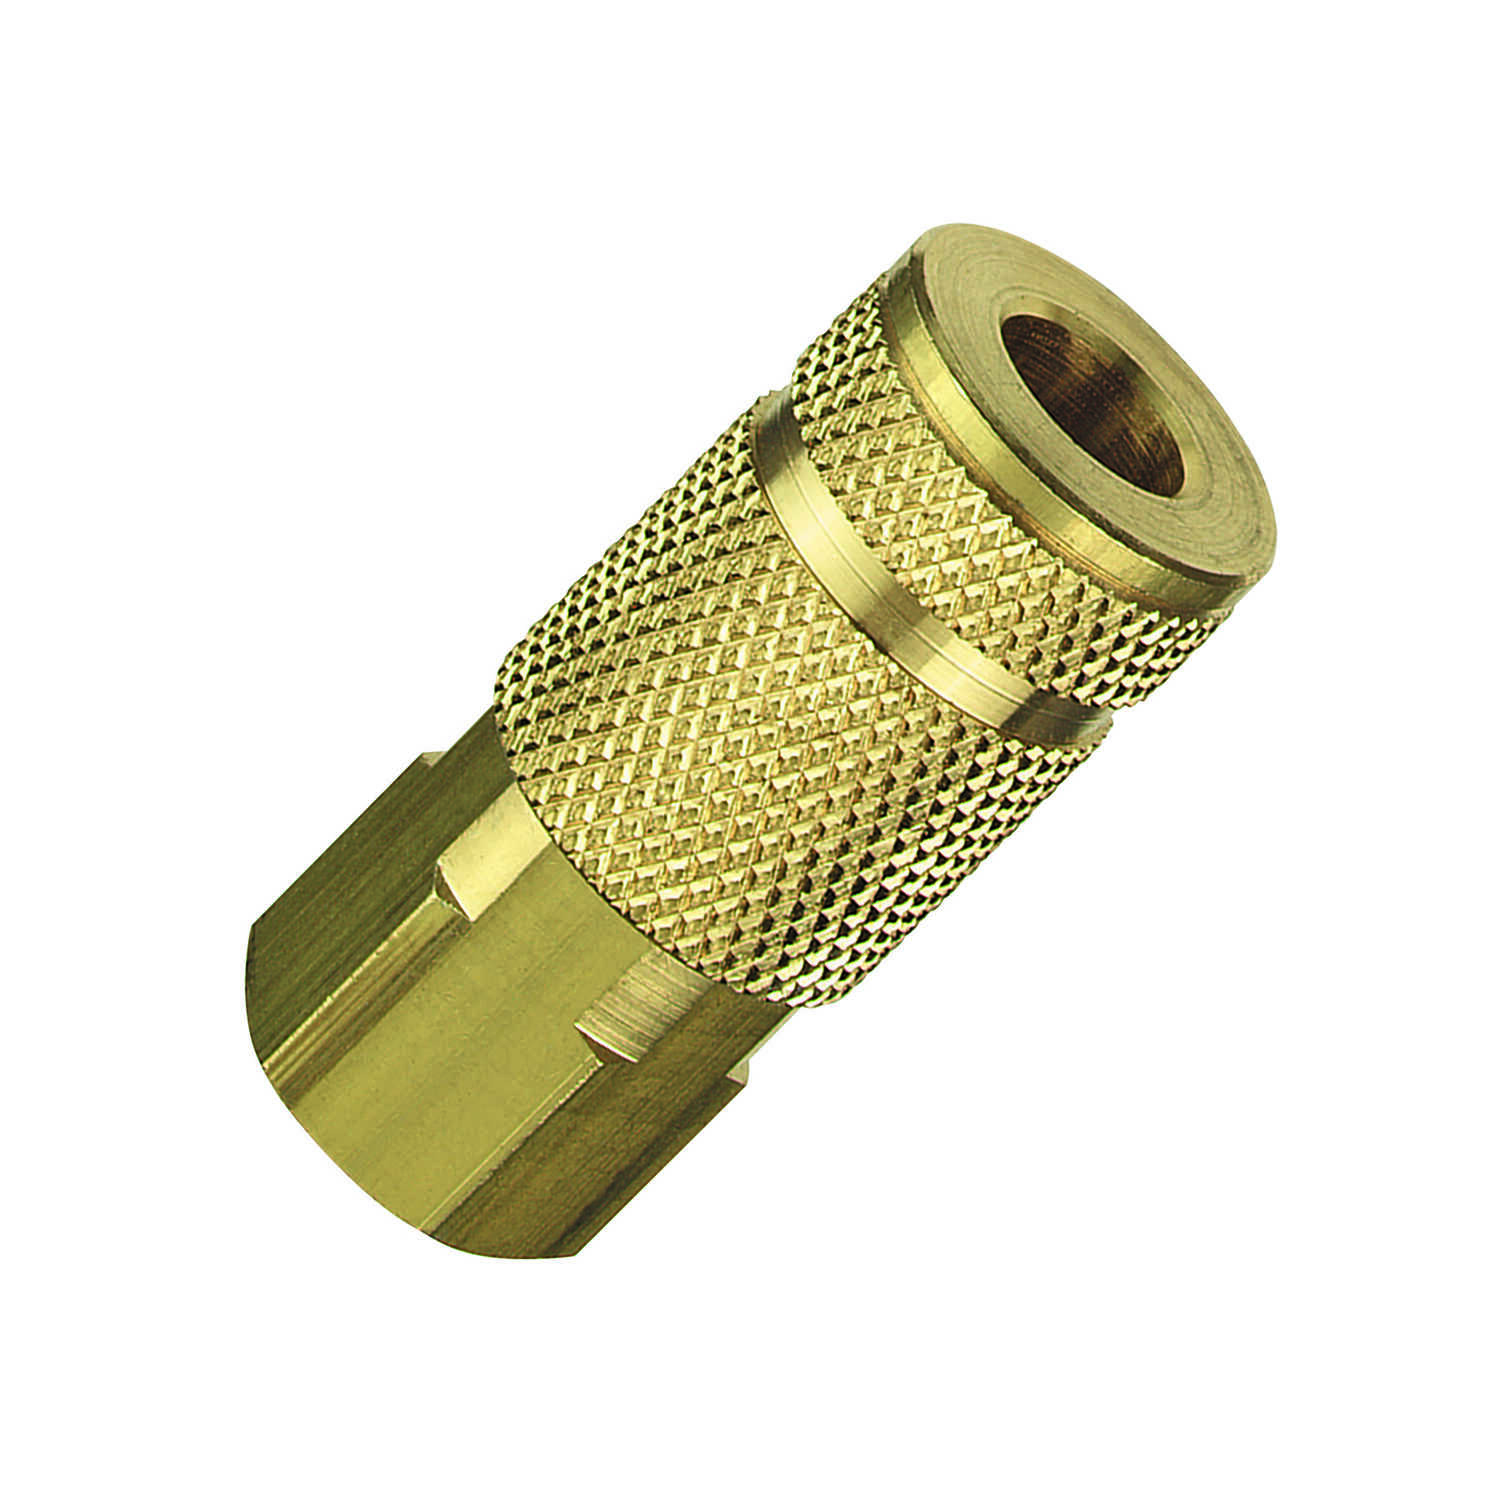 Tru-Flate  Brass  Air Coupler  1/4 in. Female  1 pc.